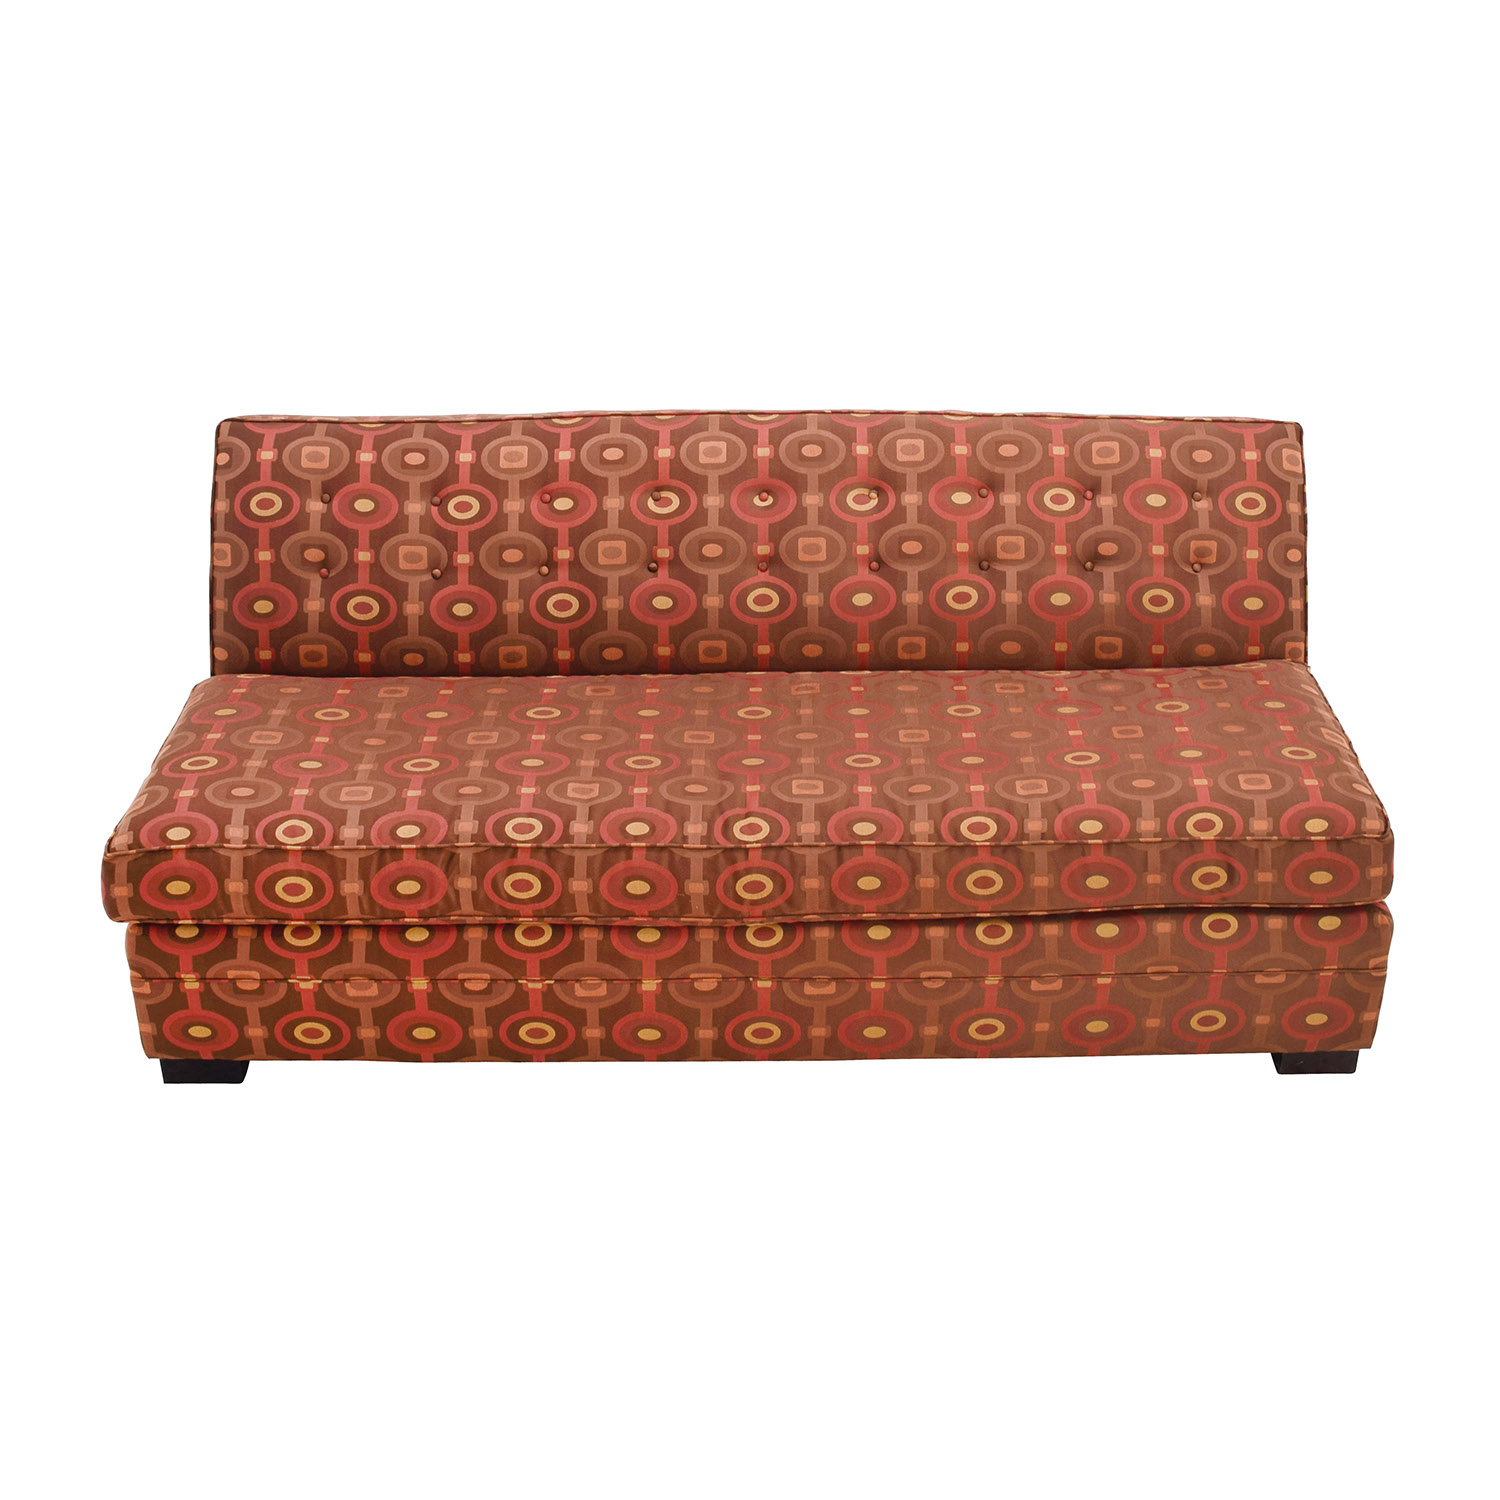 Mitchell Gold & Bob Williams Mitchell Gold & Bob Williams Asymmetrical Design Fabric Couch nyc